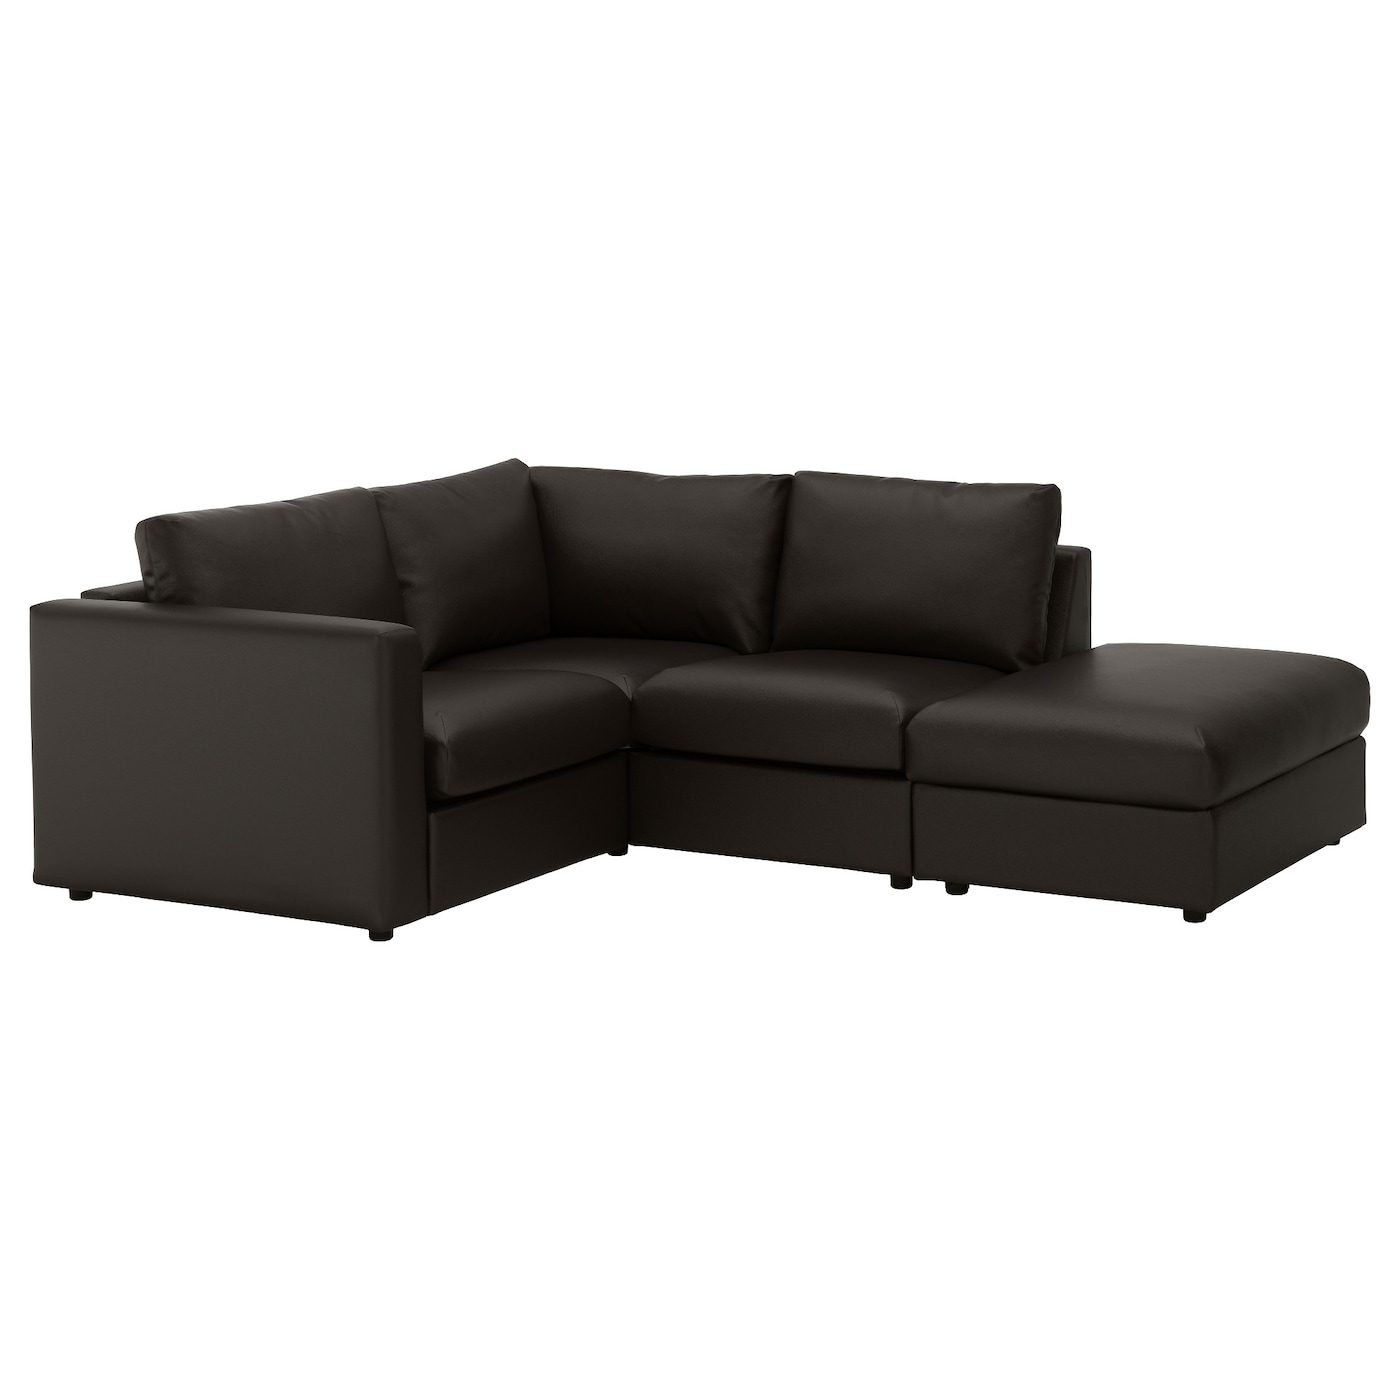 Black corner sofa leather corner sofa for london black for Black corner sofa